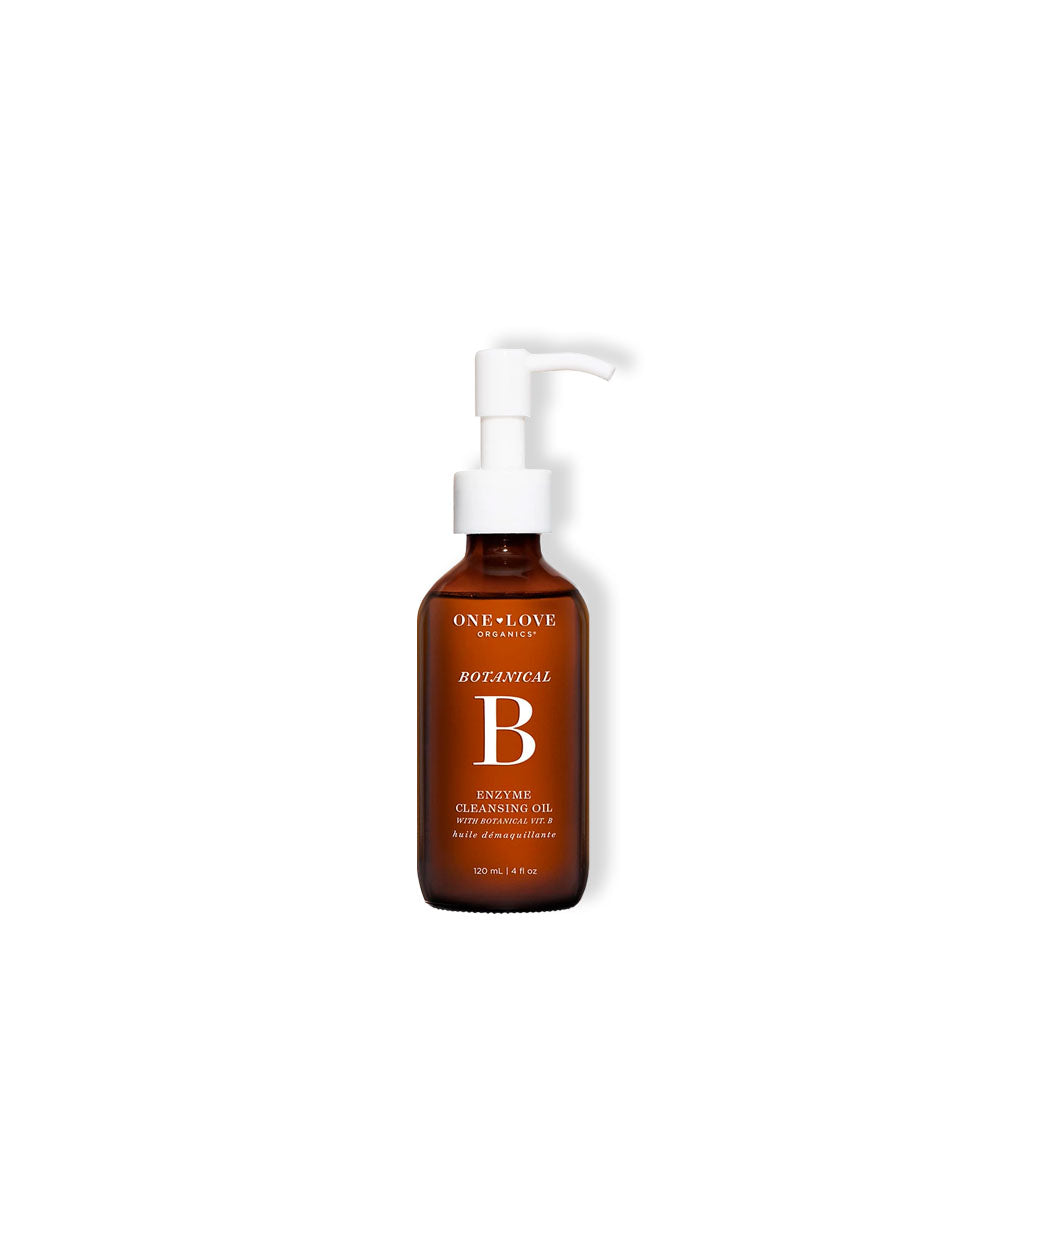 Botanical B Enzyme Cleansing Oil - LEMON LAINE - Cleansers - One Love Organics